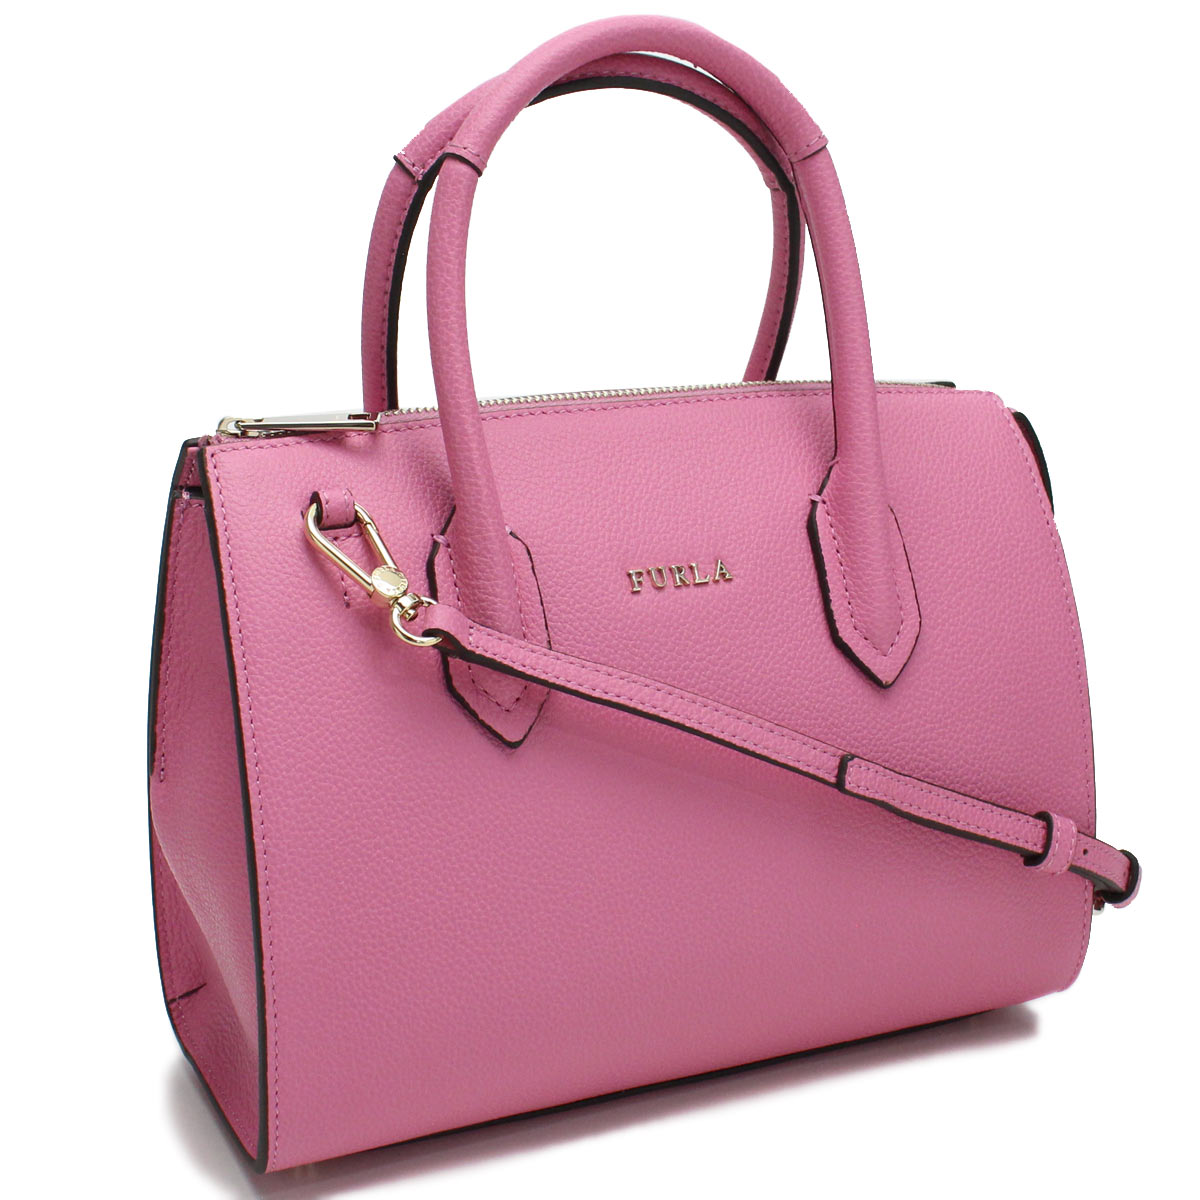 Hit The Total Brand Whole フルラ Furla Bag Pin Handbag Bmn1 924713 Oas Or9 Orchidea Pink System Rakuten Global Market